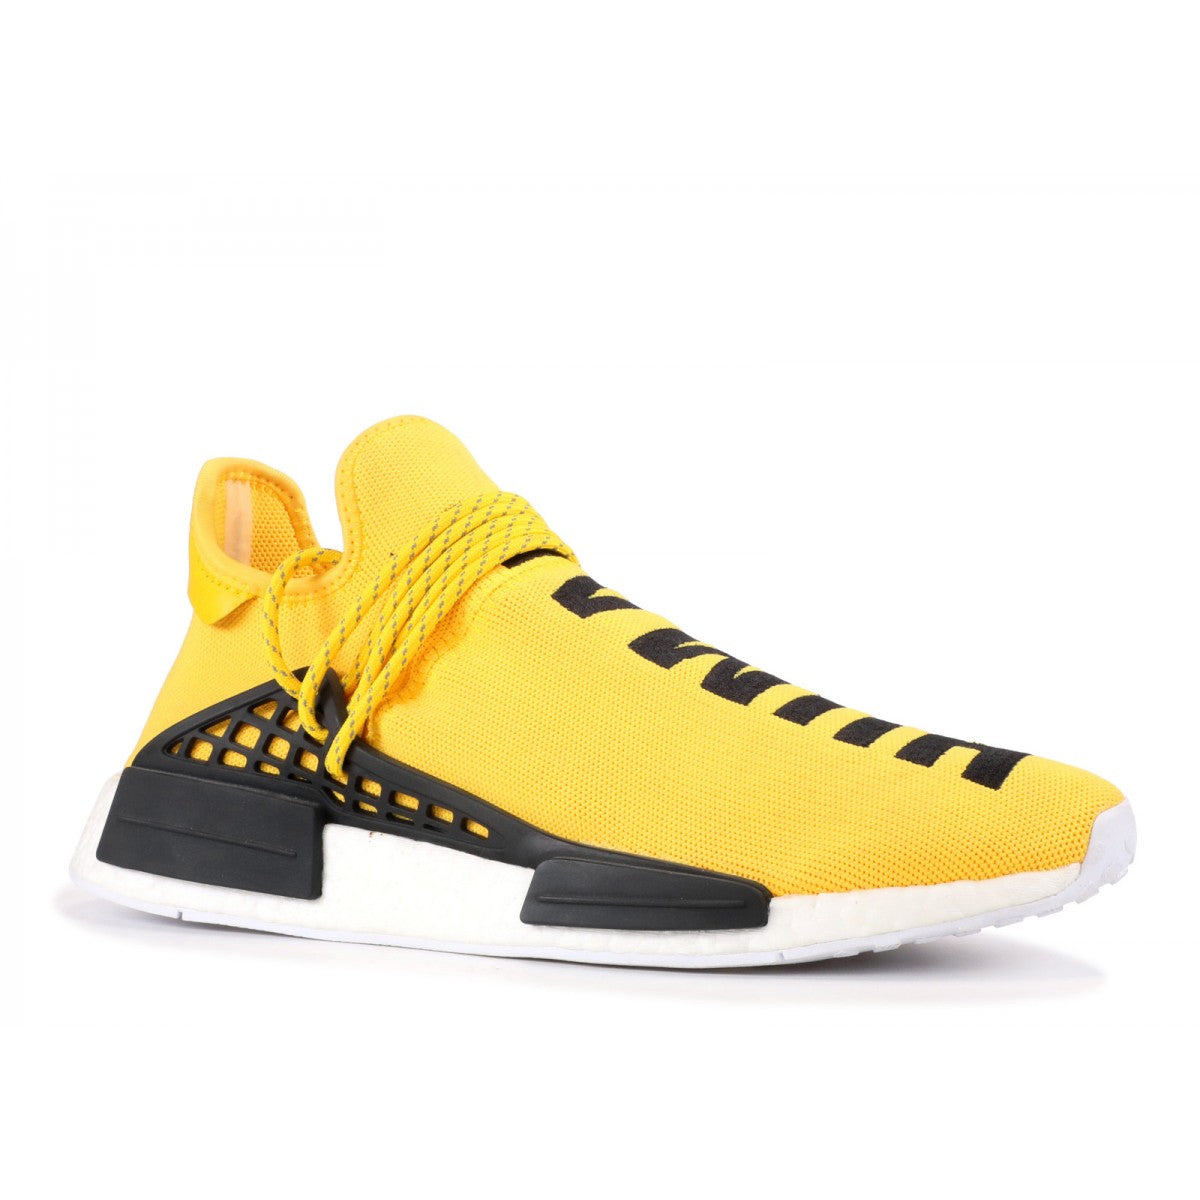 premium selection 86a72 f30ac Adidas X Pharrell Williams Human Race NMD 'Yellow'